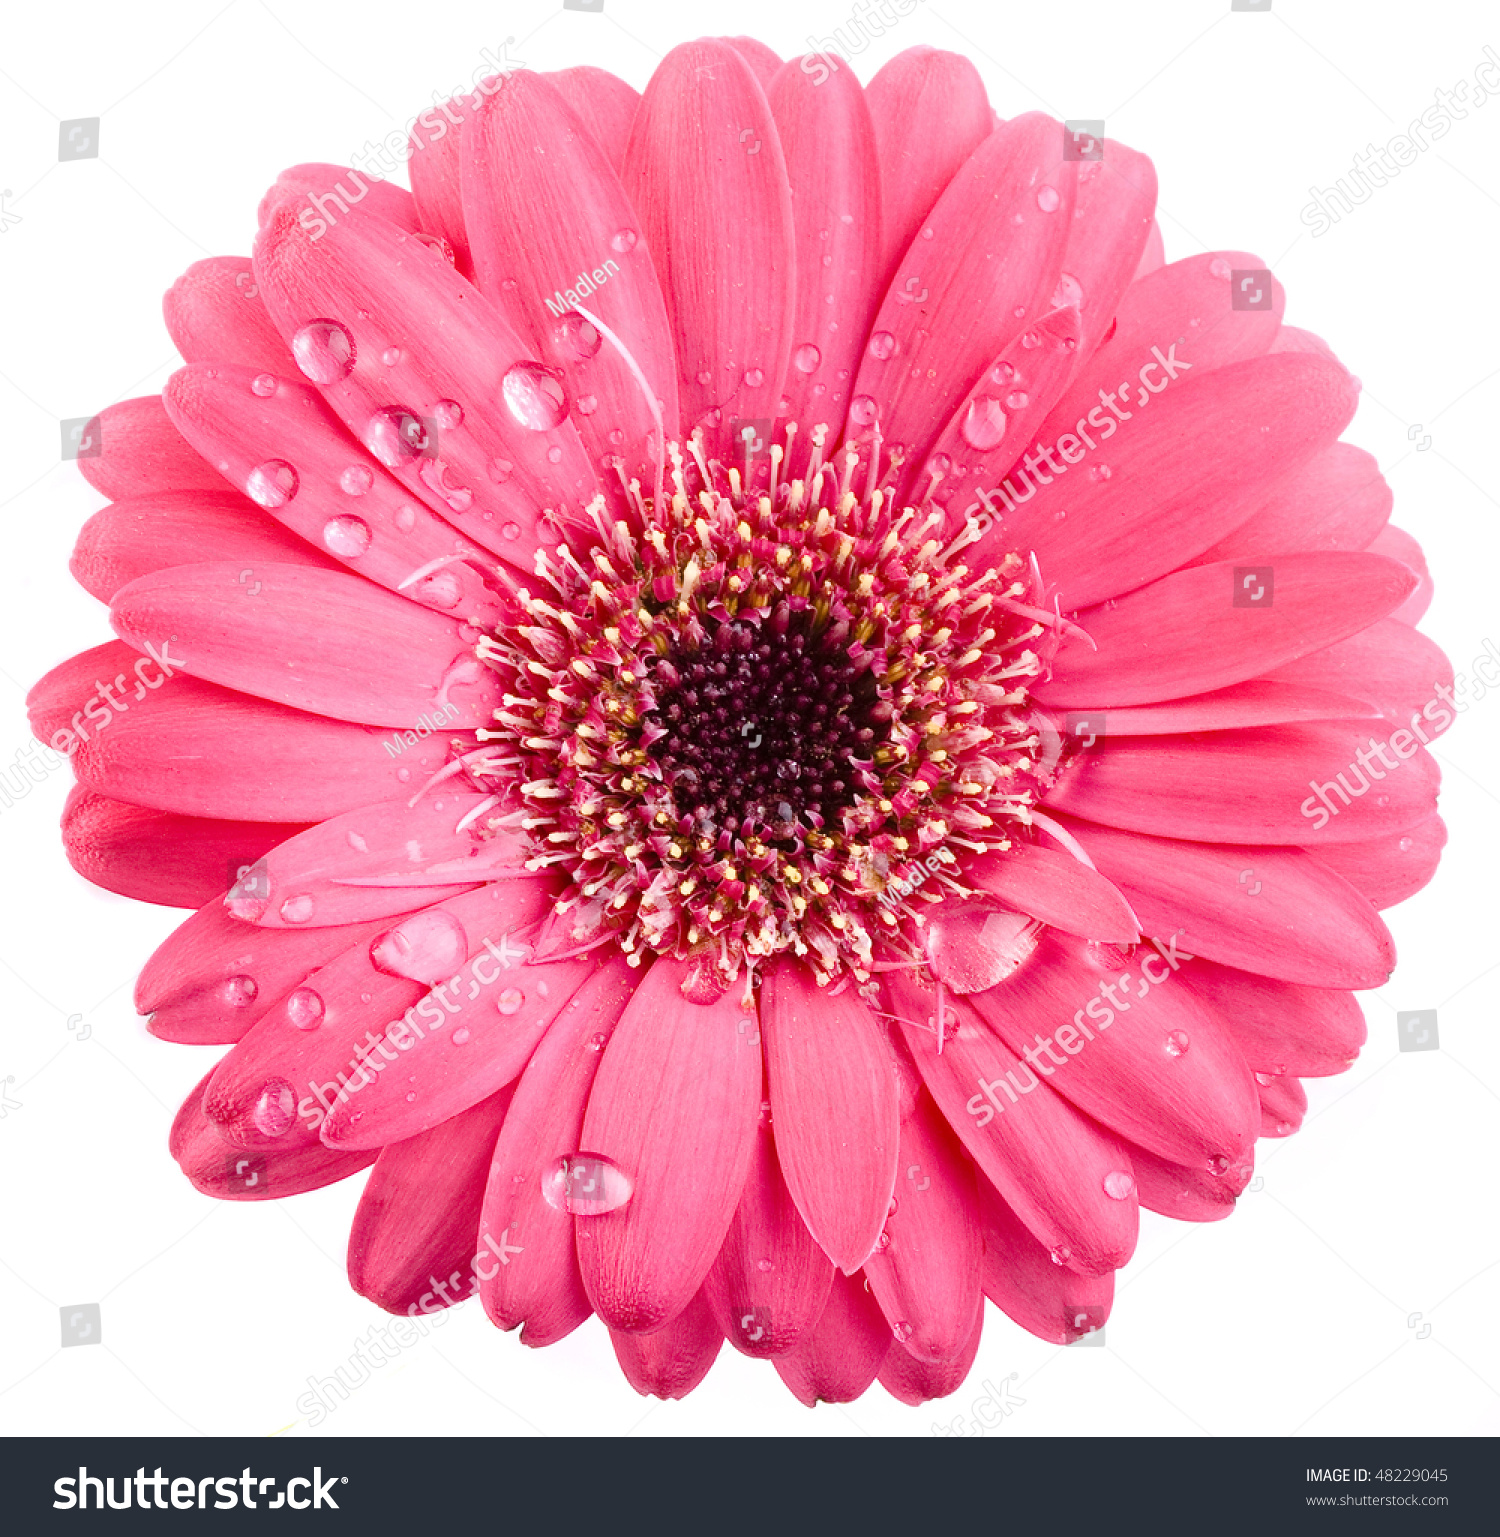 Pink flower head surface top view stock photo edit now 48229045 pink flower head surface top view isolated on white background mightylinksfo